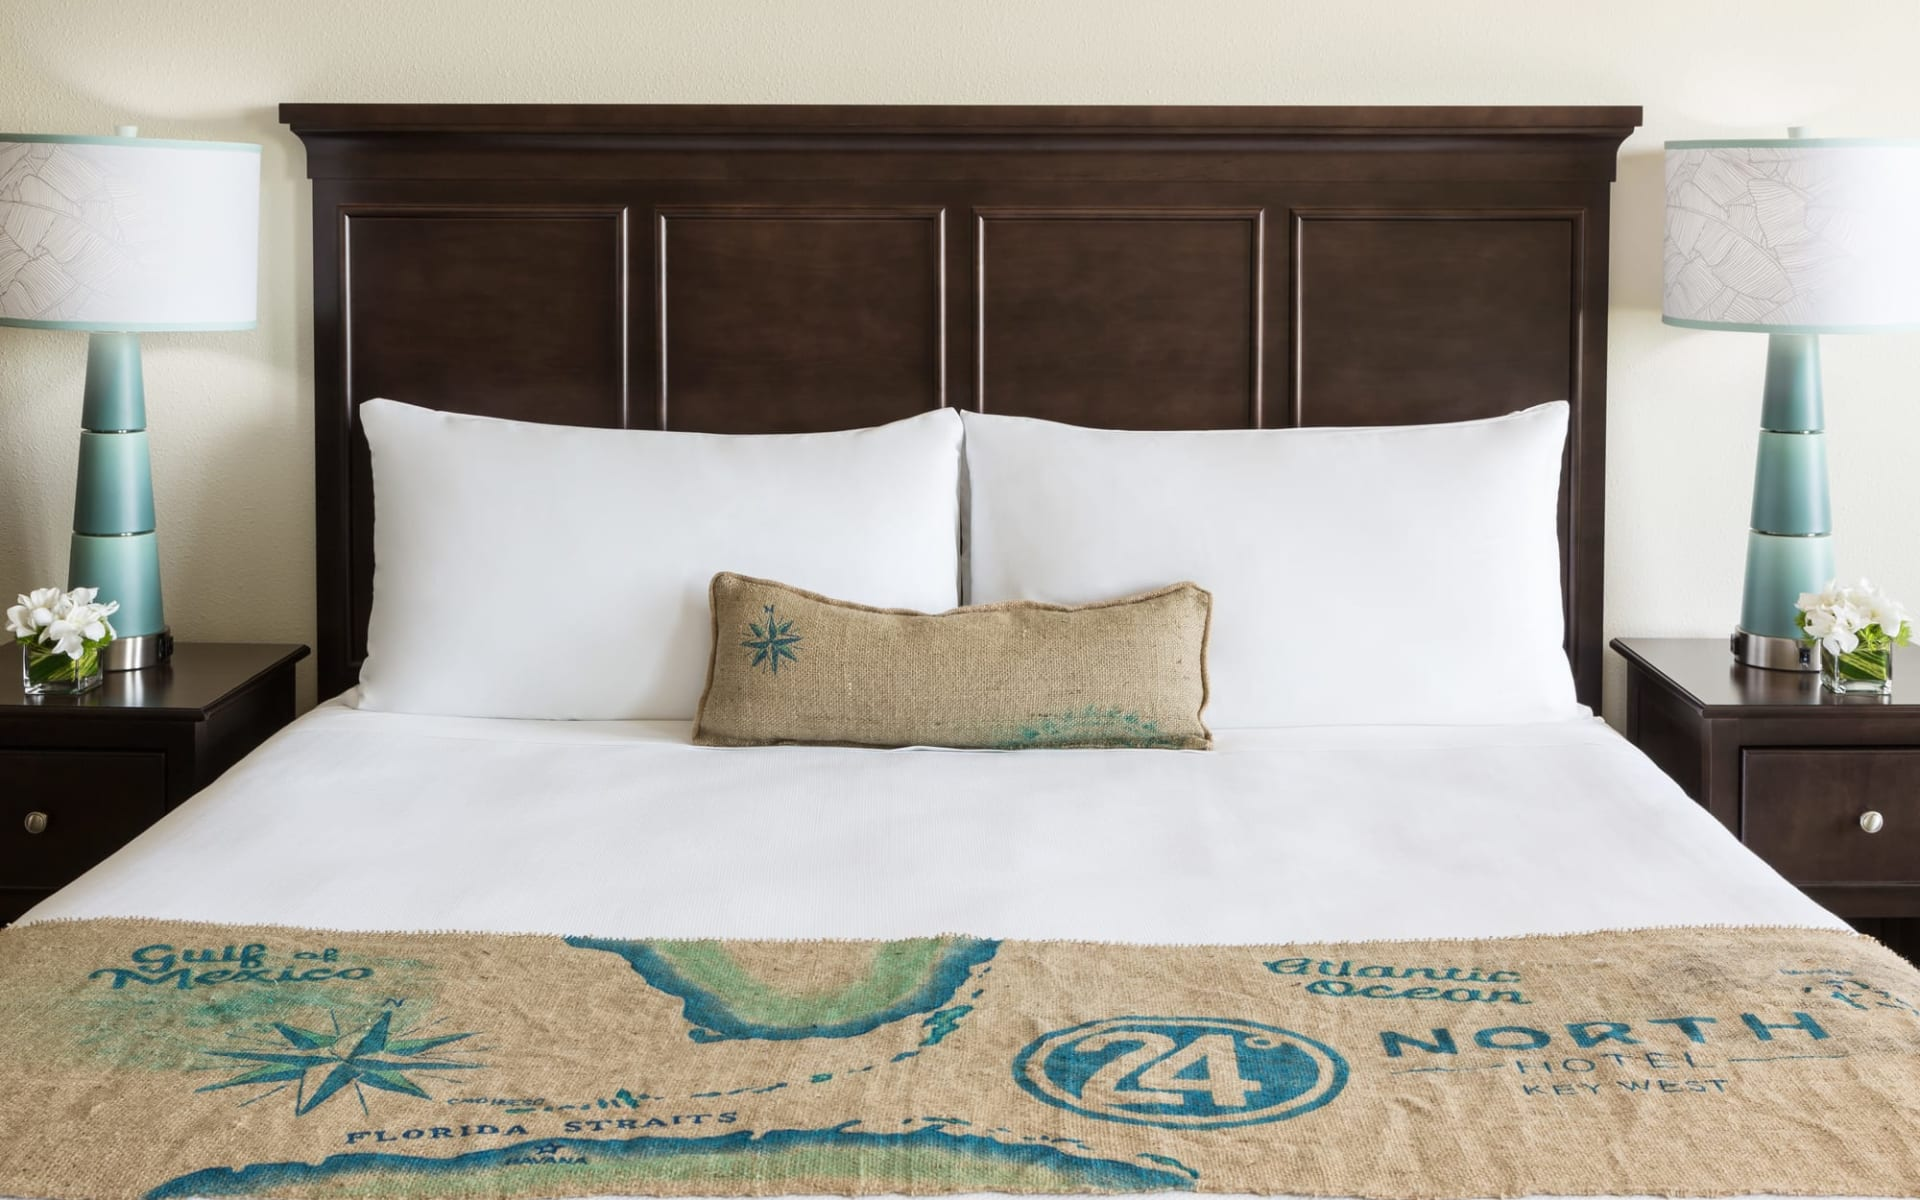 24 North Hotel in Key West: 24-North-Guestroom-Bed